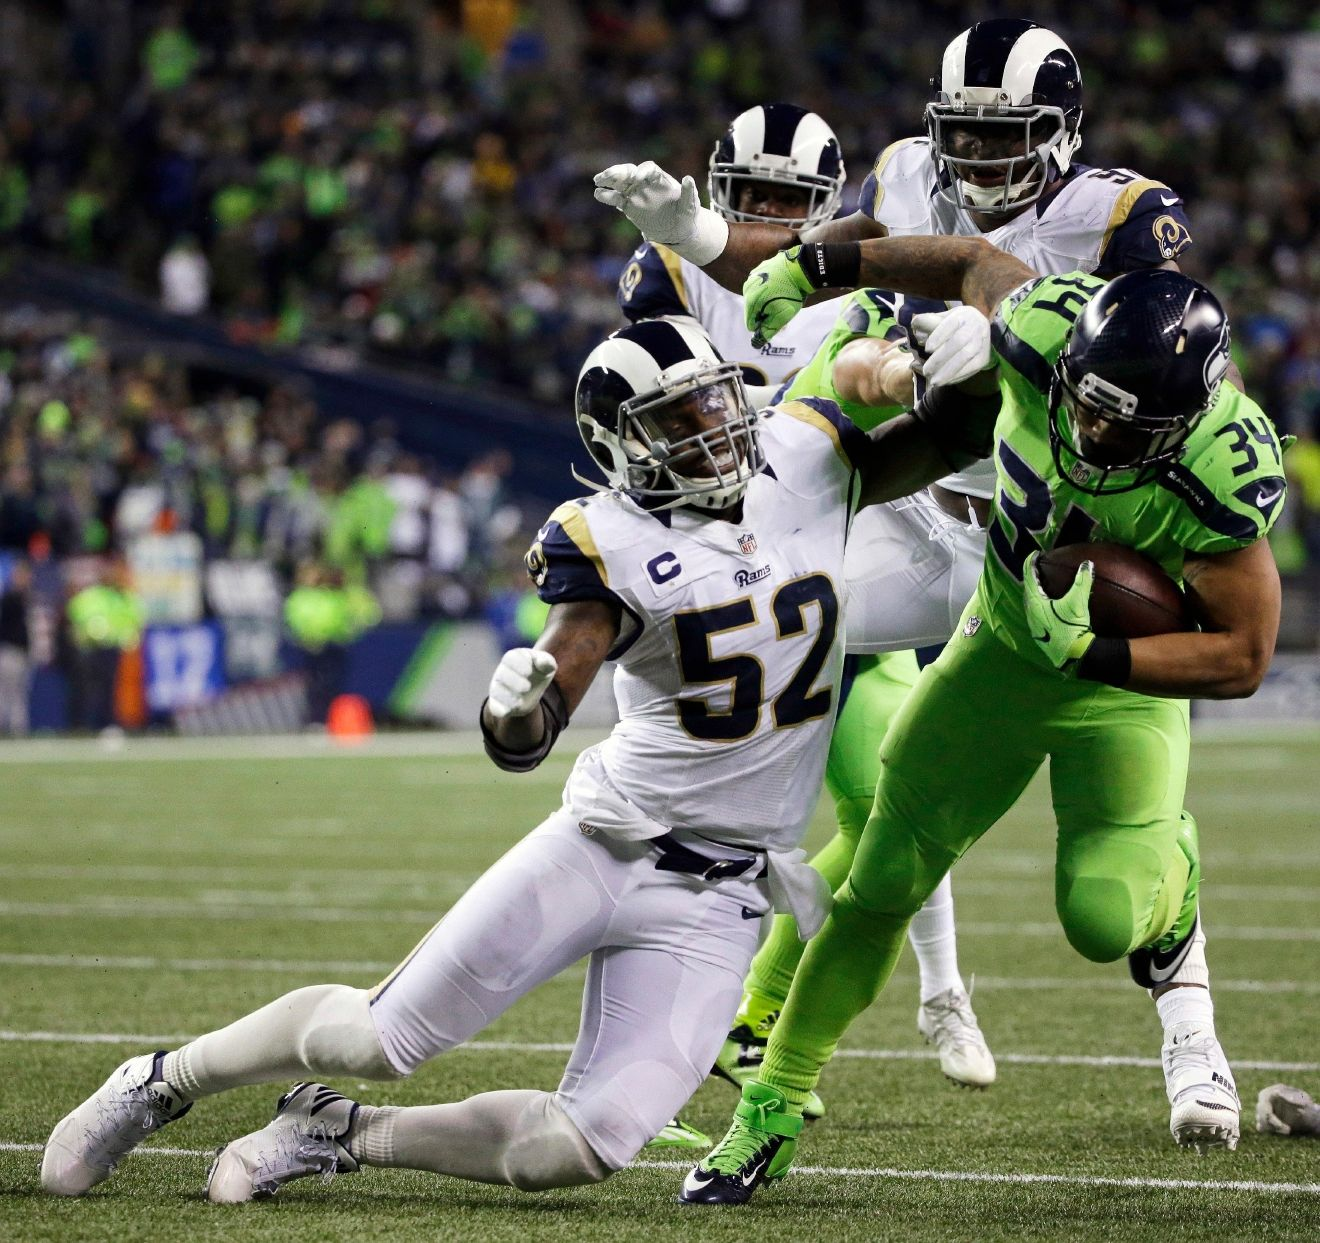 Seattle Seahawks running back Thomas Rawls (34) pushes off Los Angeles Rams middle linebacker Alec Ogletree (52) in the second half of an NFL football game, Thursday, Dec. 15, 2016, in Seattle. (AP Photo/Elaine Thompson)